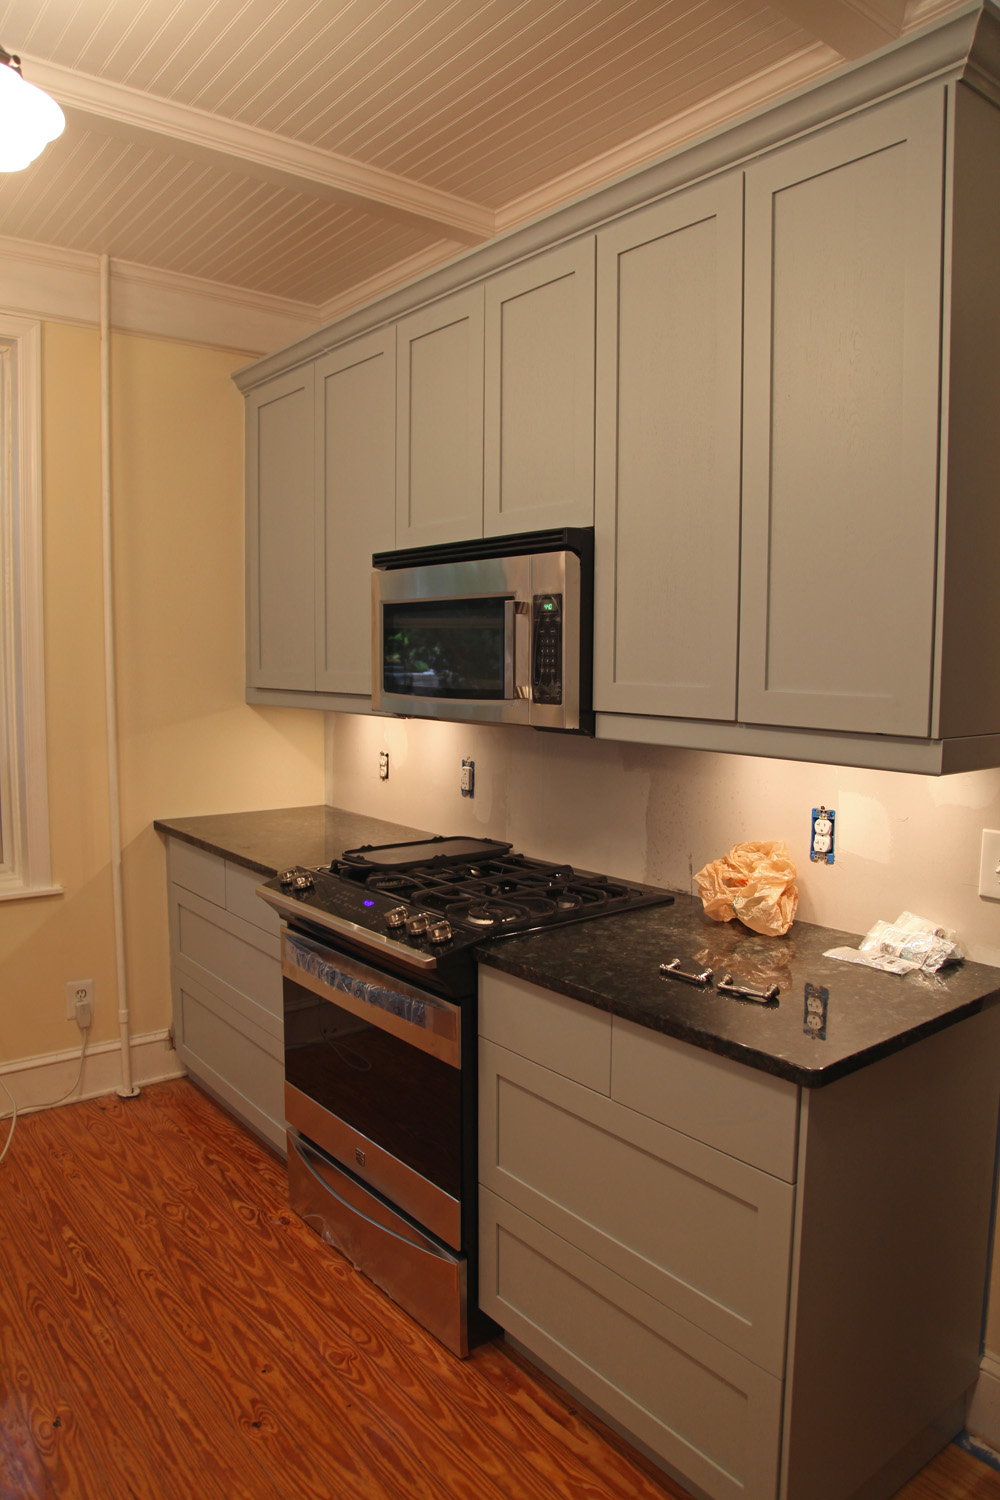 painting ikea kitchen cabinet doors drawer fronts kitchen cabinets ikea Installed Painted Cabinets